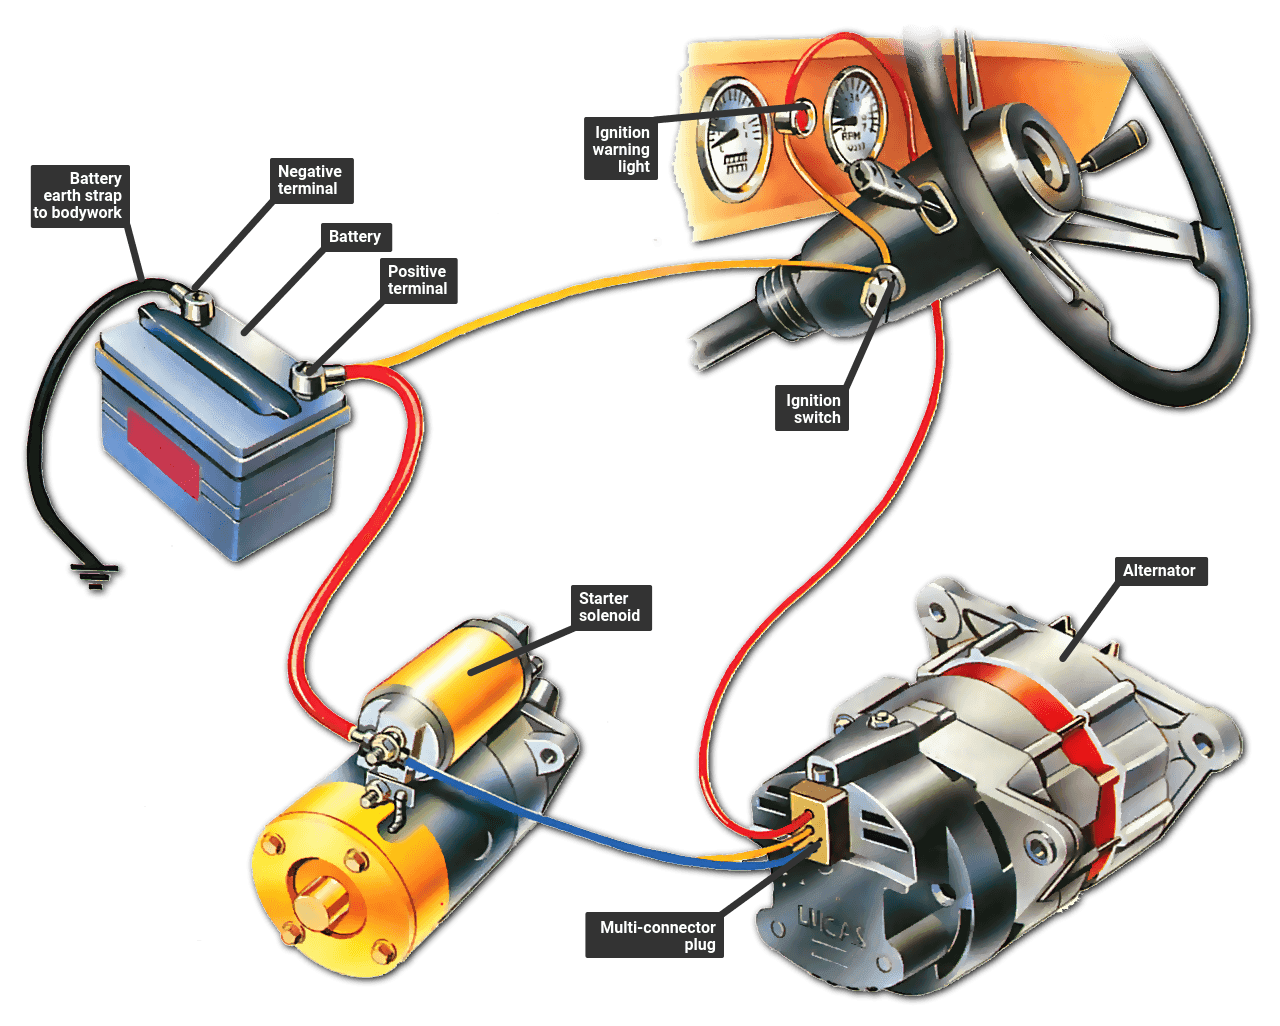 Troubleshooting The Ignition Warning Light How A Car Works 2005 Ford Focus Wiring Diagram